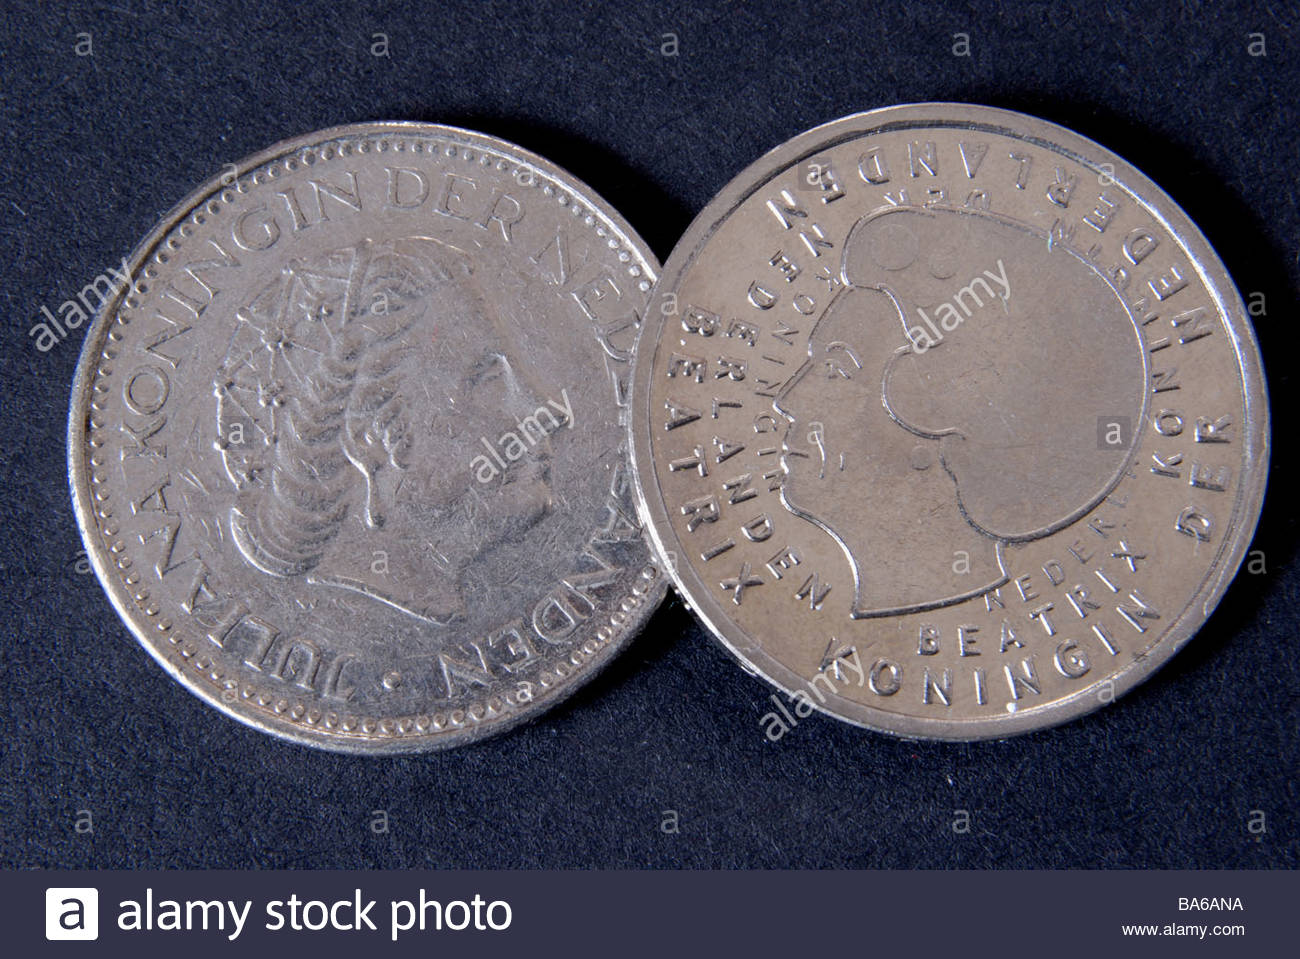 Dutch one guilder coins with the heads of Queens Juliana and Beatrix. - Stock Image